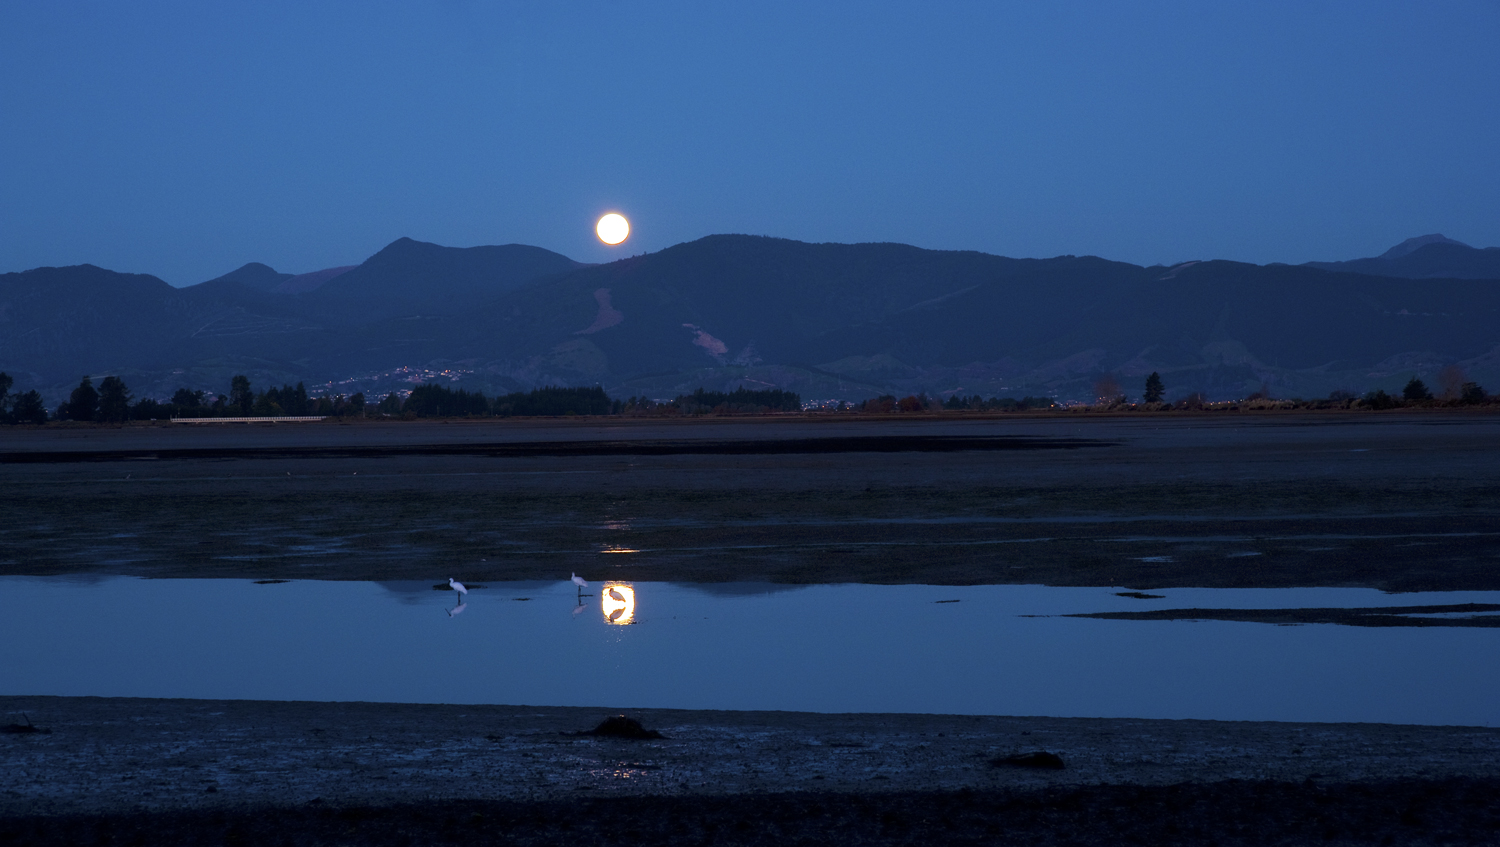 Moonrise with white herons